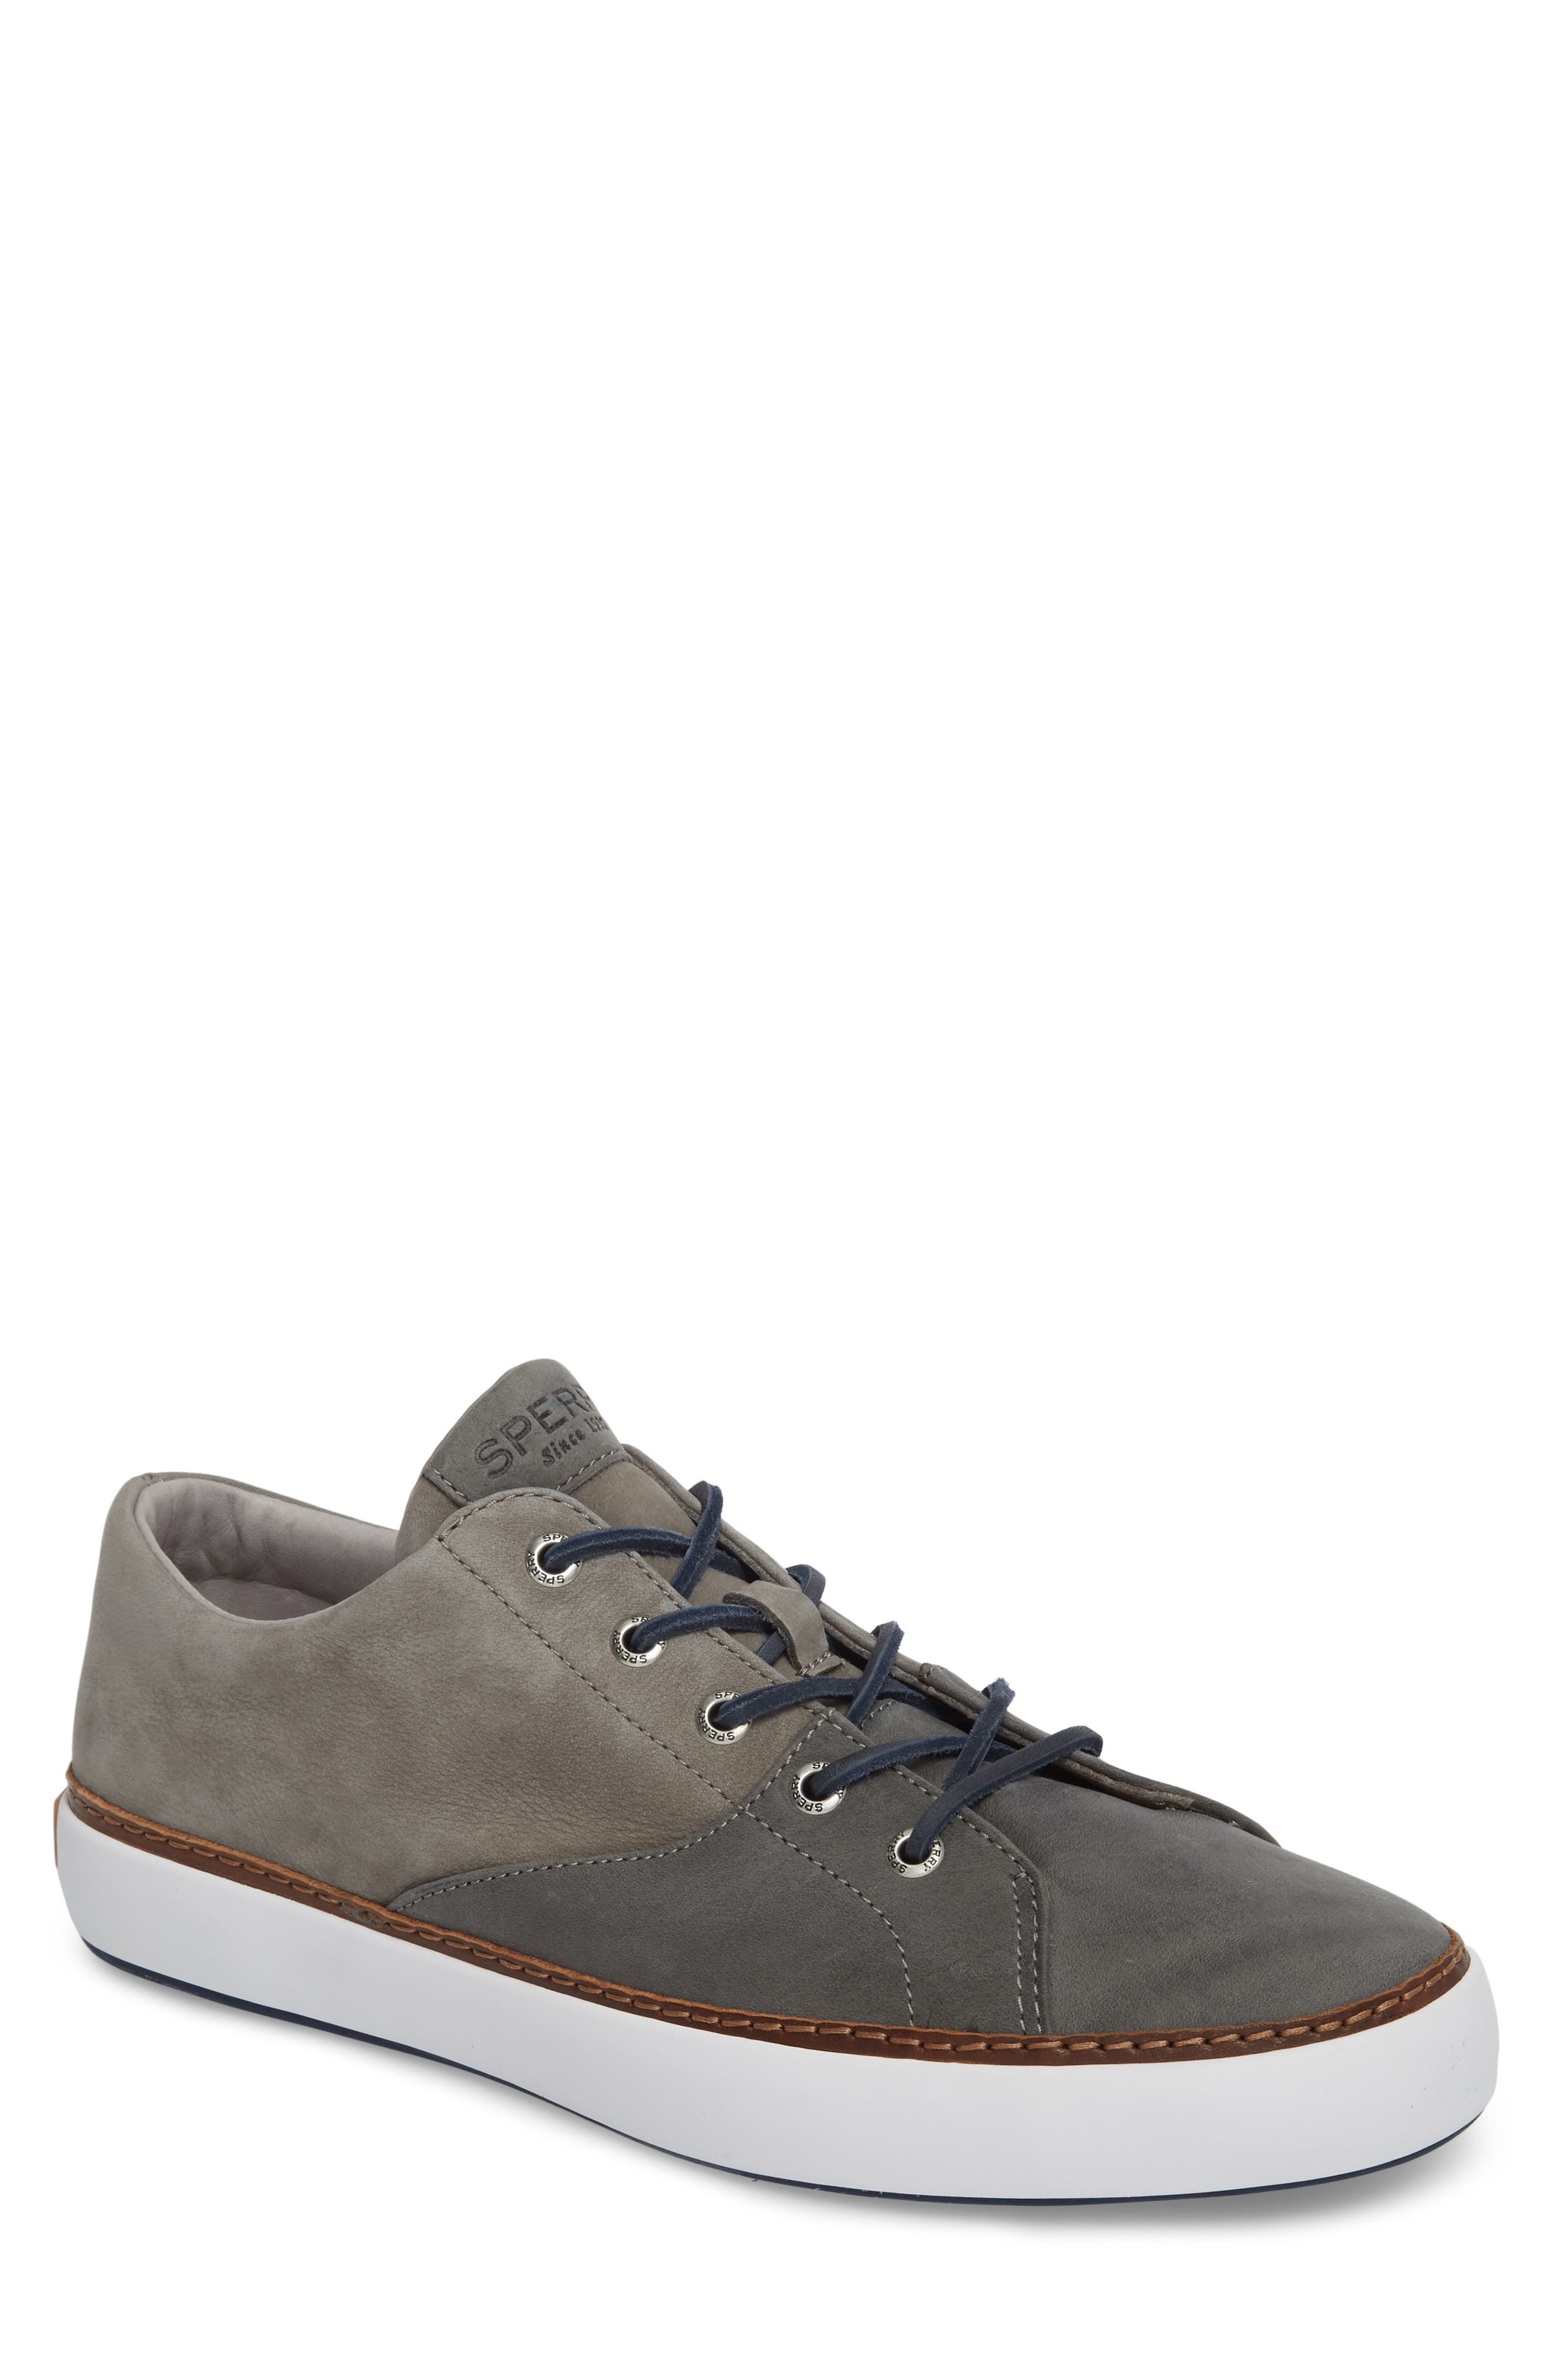 Gold Cup Haven Sneaker,                             Main thumbnail 1, color,                             Grey Leather